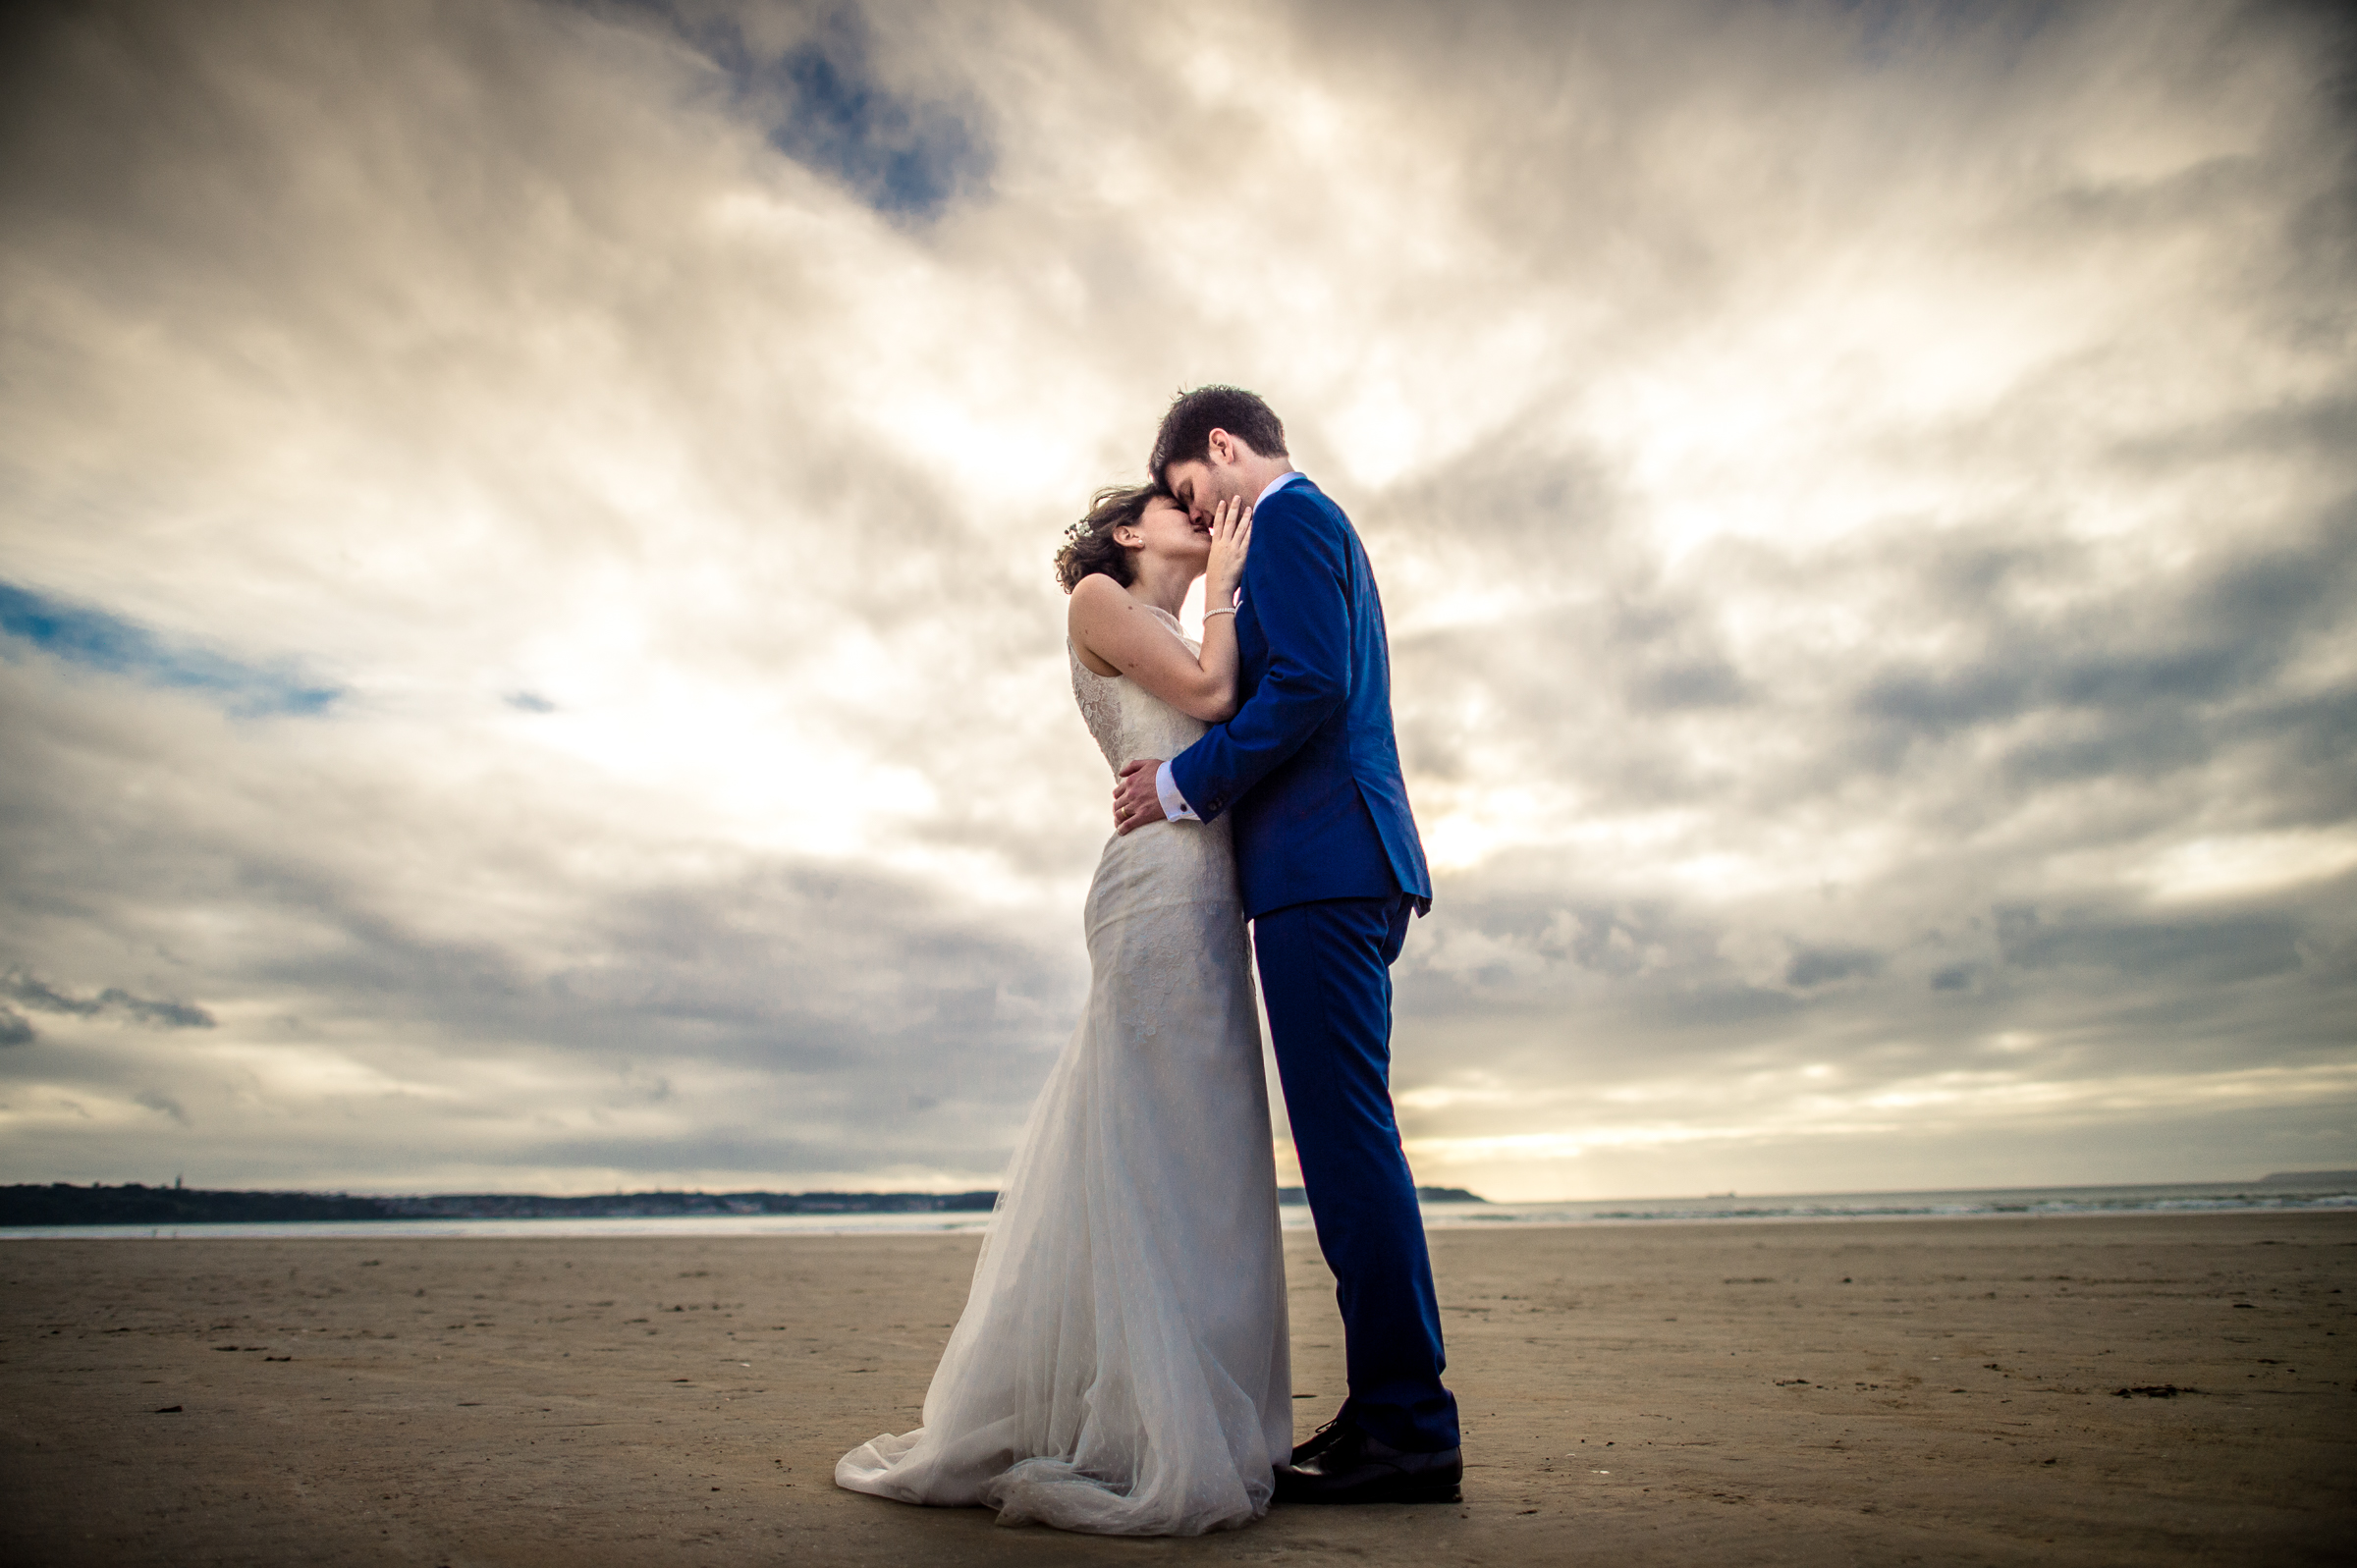 Beachside couple kiss under epic skies - photo by Gaelle Le Berre Photography